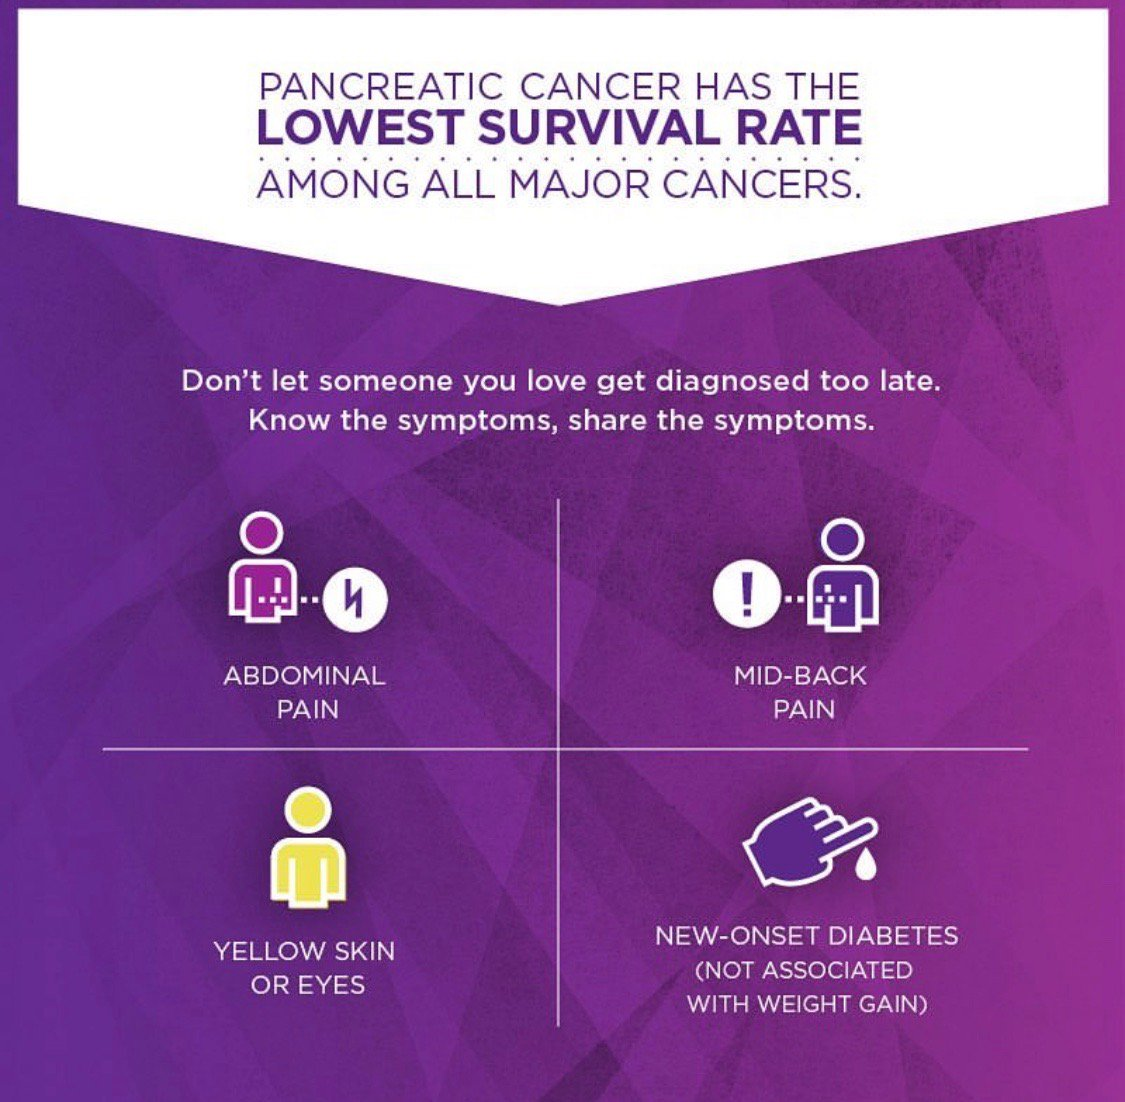 November is #PancreaticCancer Awareness Month. Better progress starts with early detection. (via @worldpancreatic) ???? https://t.co/s3iZAHL1C9